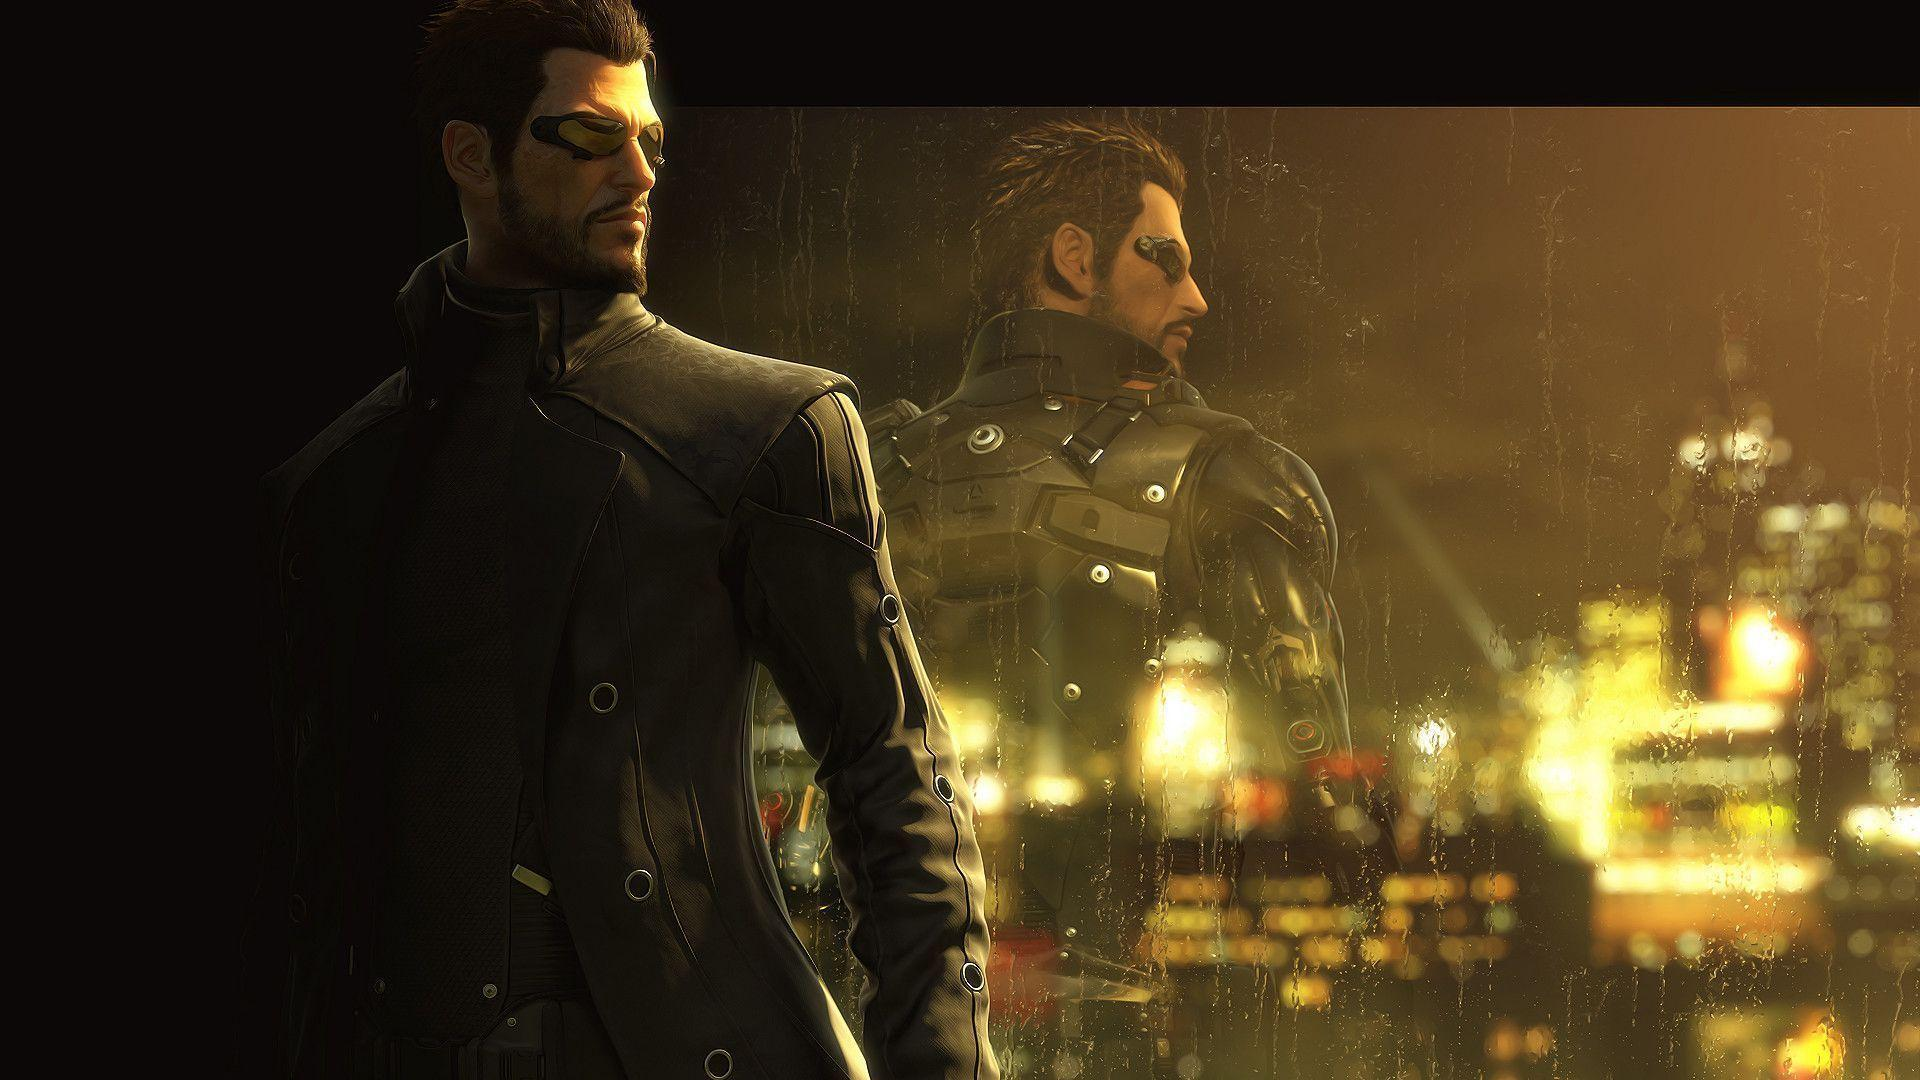 Image For > Deus Ex Human Revolution Iphone Wallpapers